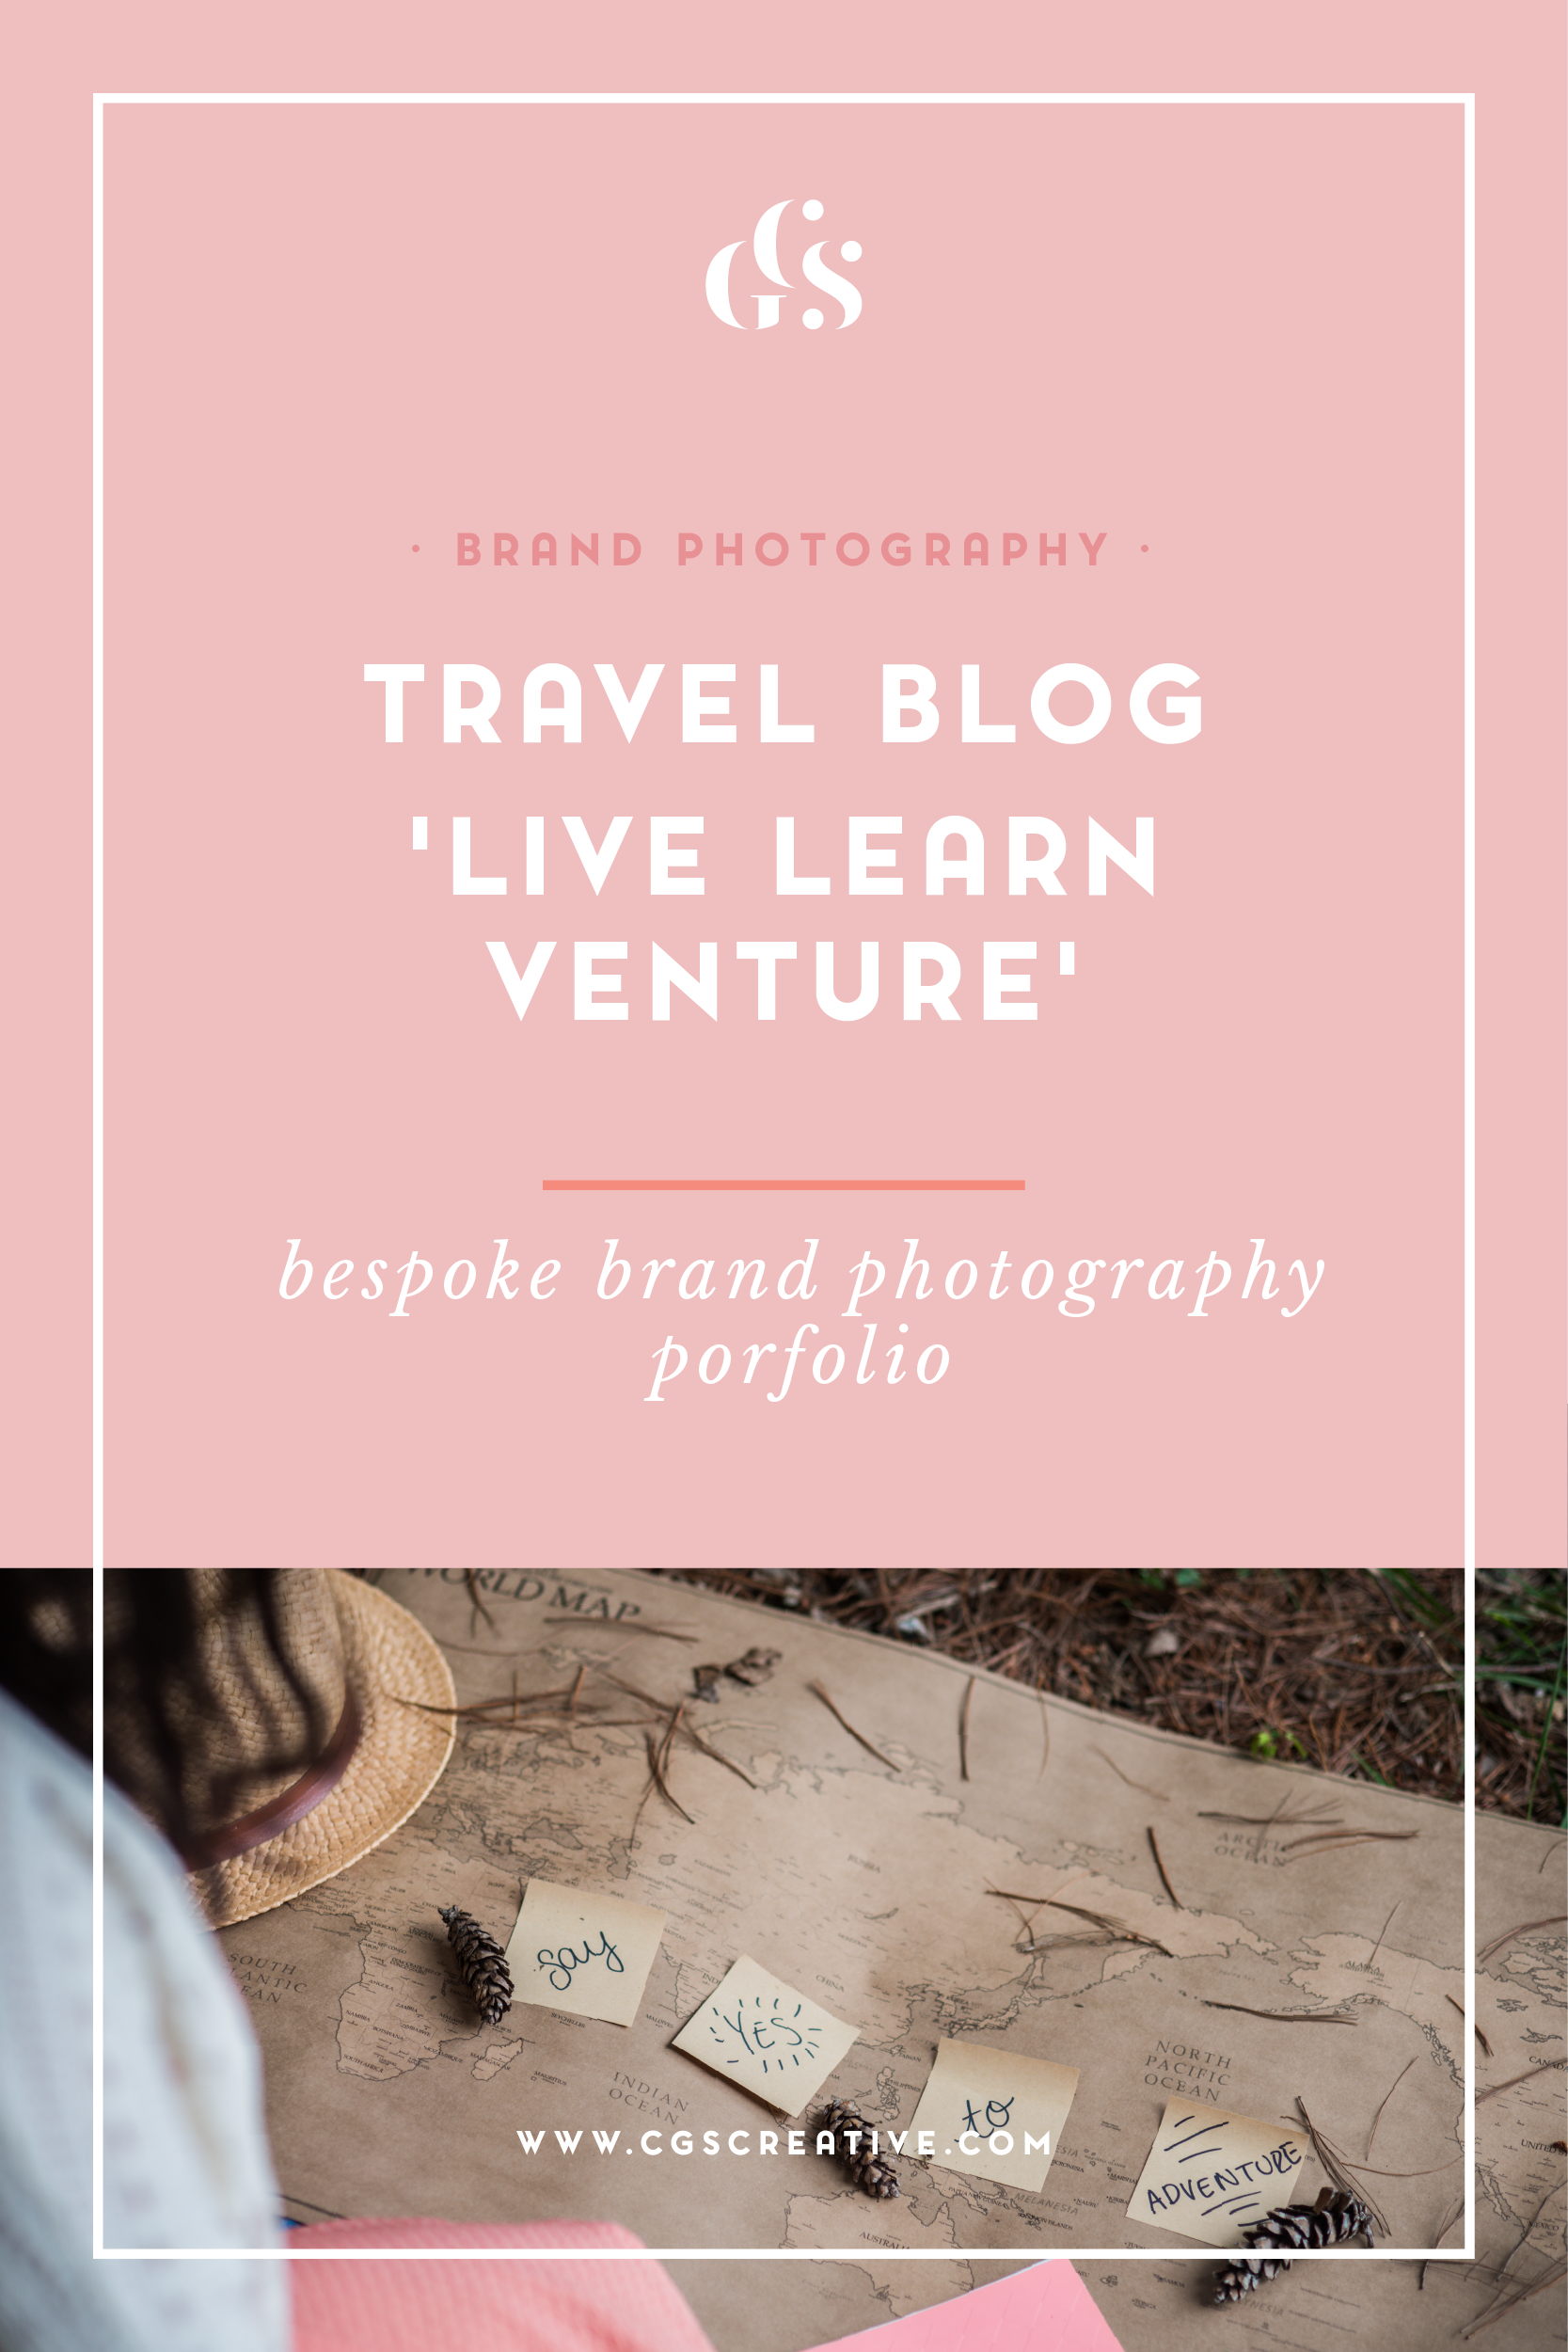 Travel Blog Brand photography by CGScreative bespoke brand photography for creatives, bloggers and business owners